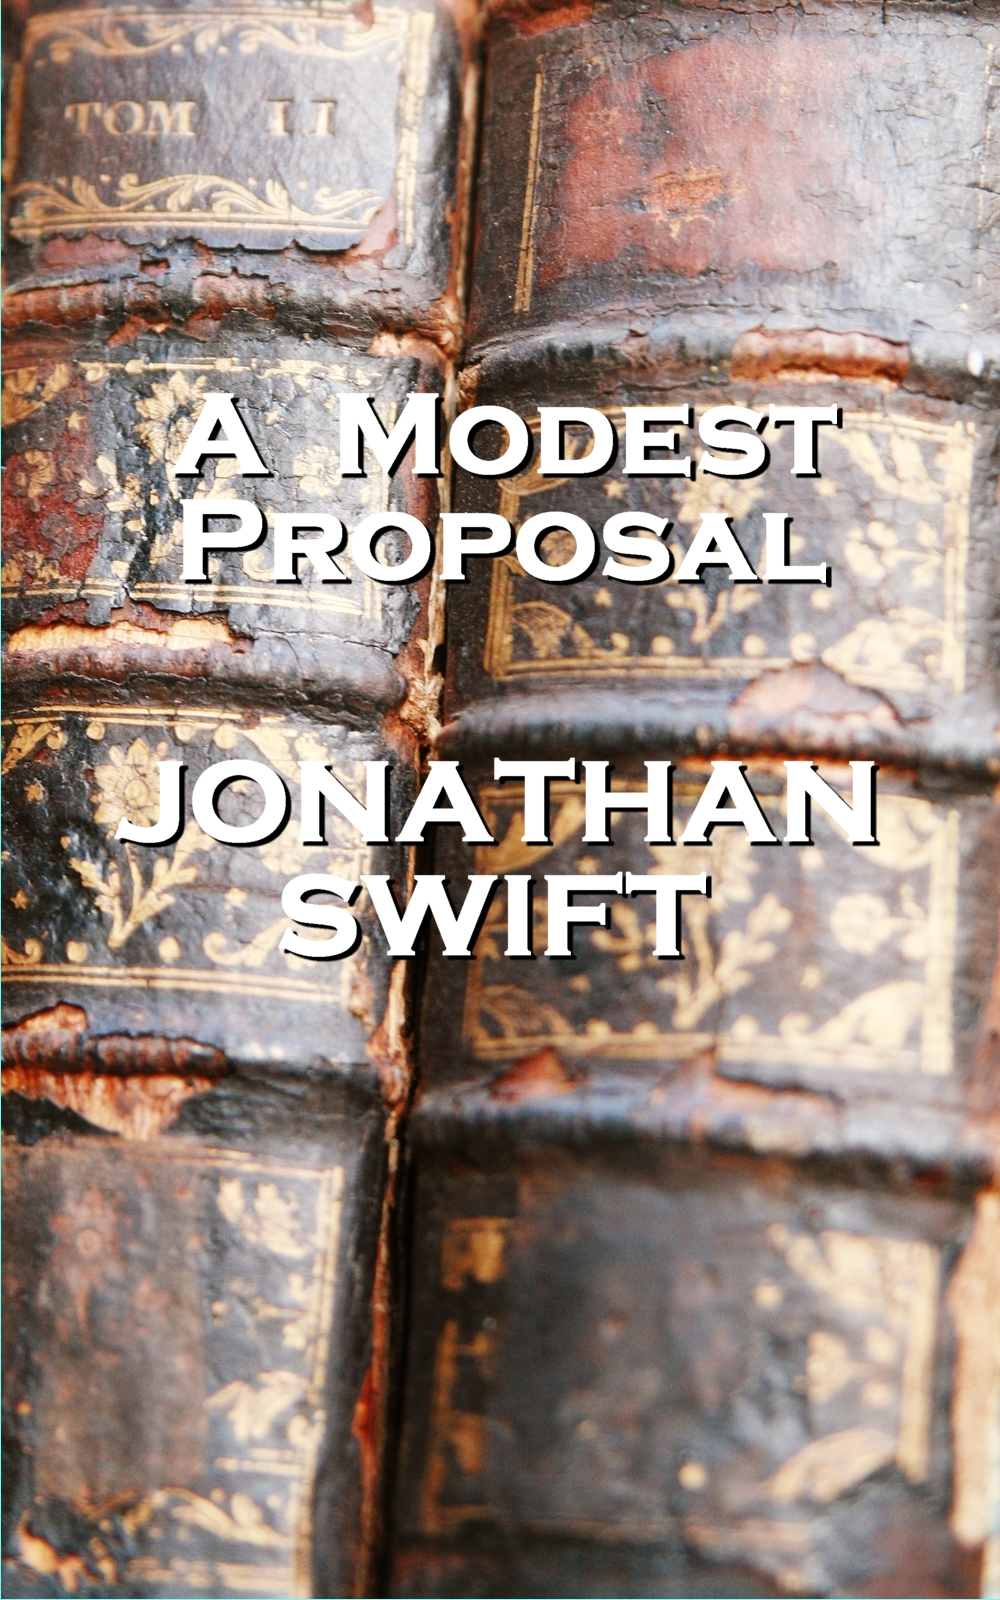 Jonathan Swift - A Modest Proposal